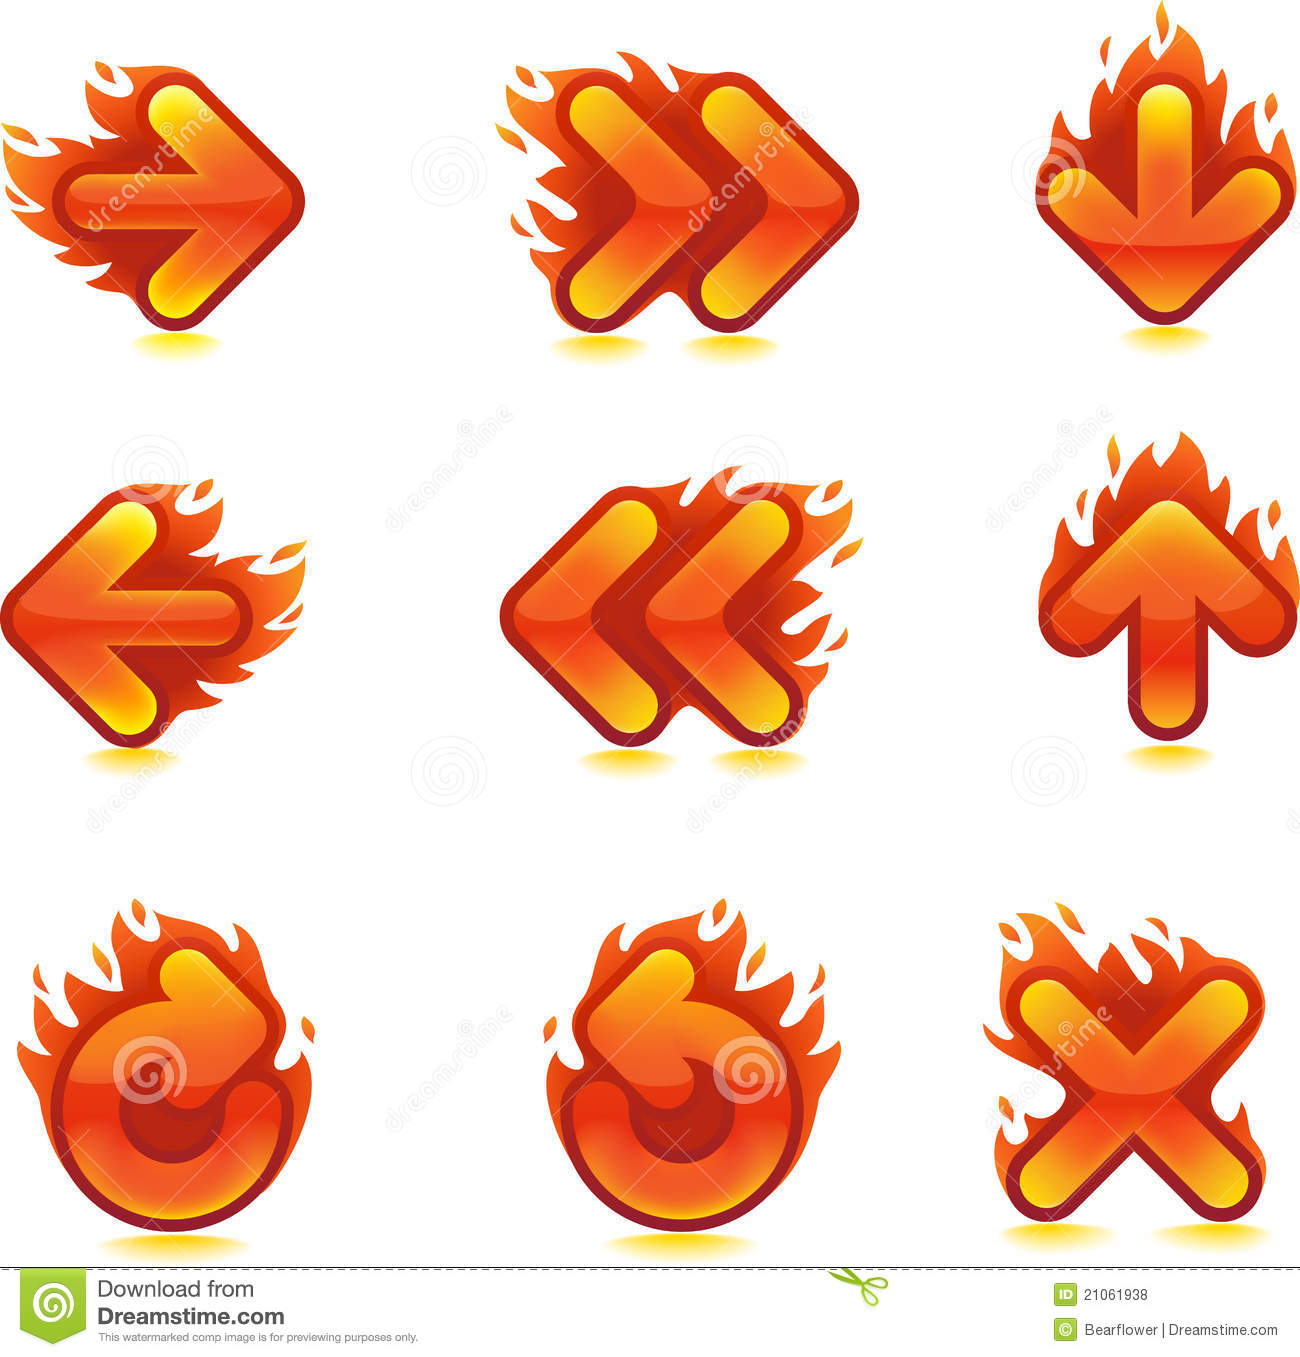 Fire arrow outline clipart black and white Fire arrow outline clipart - ClipartFest black and white